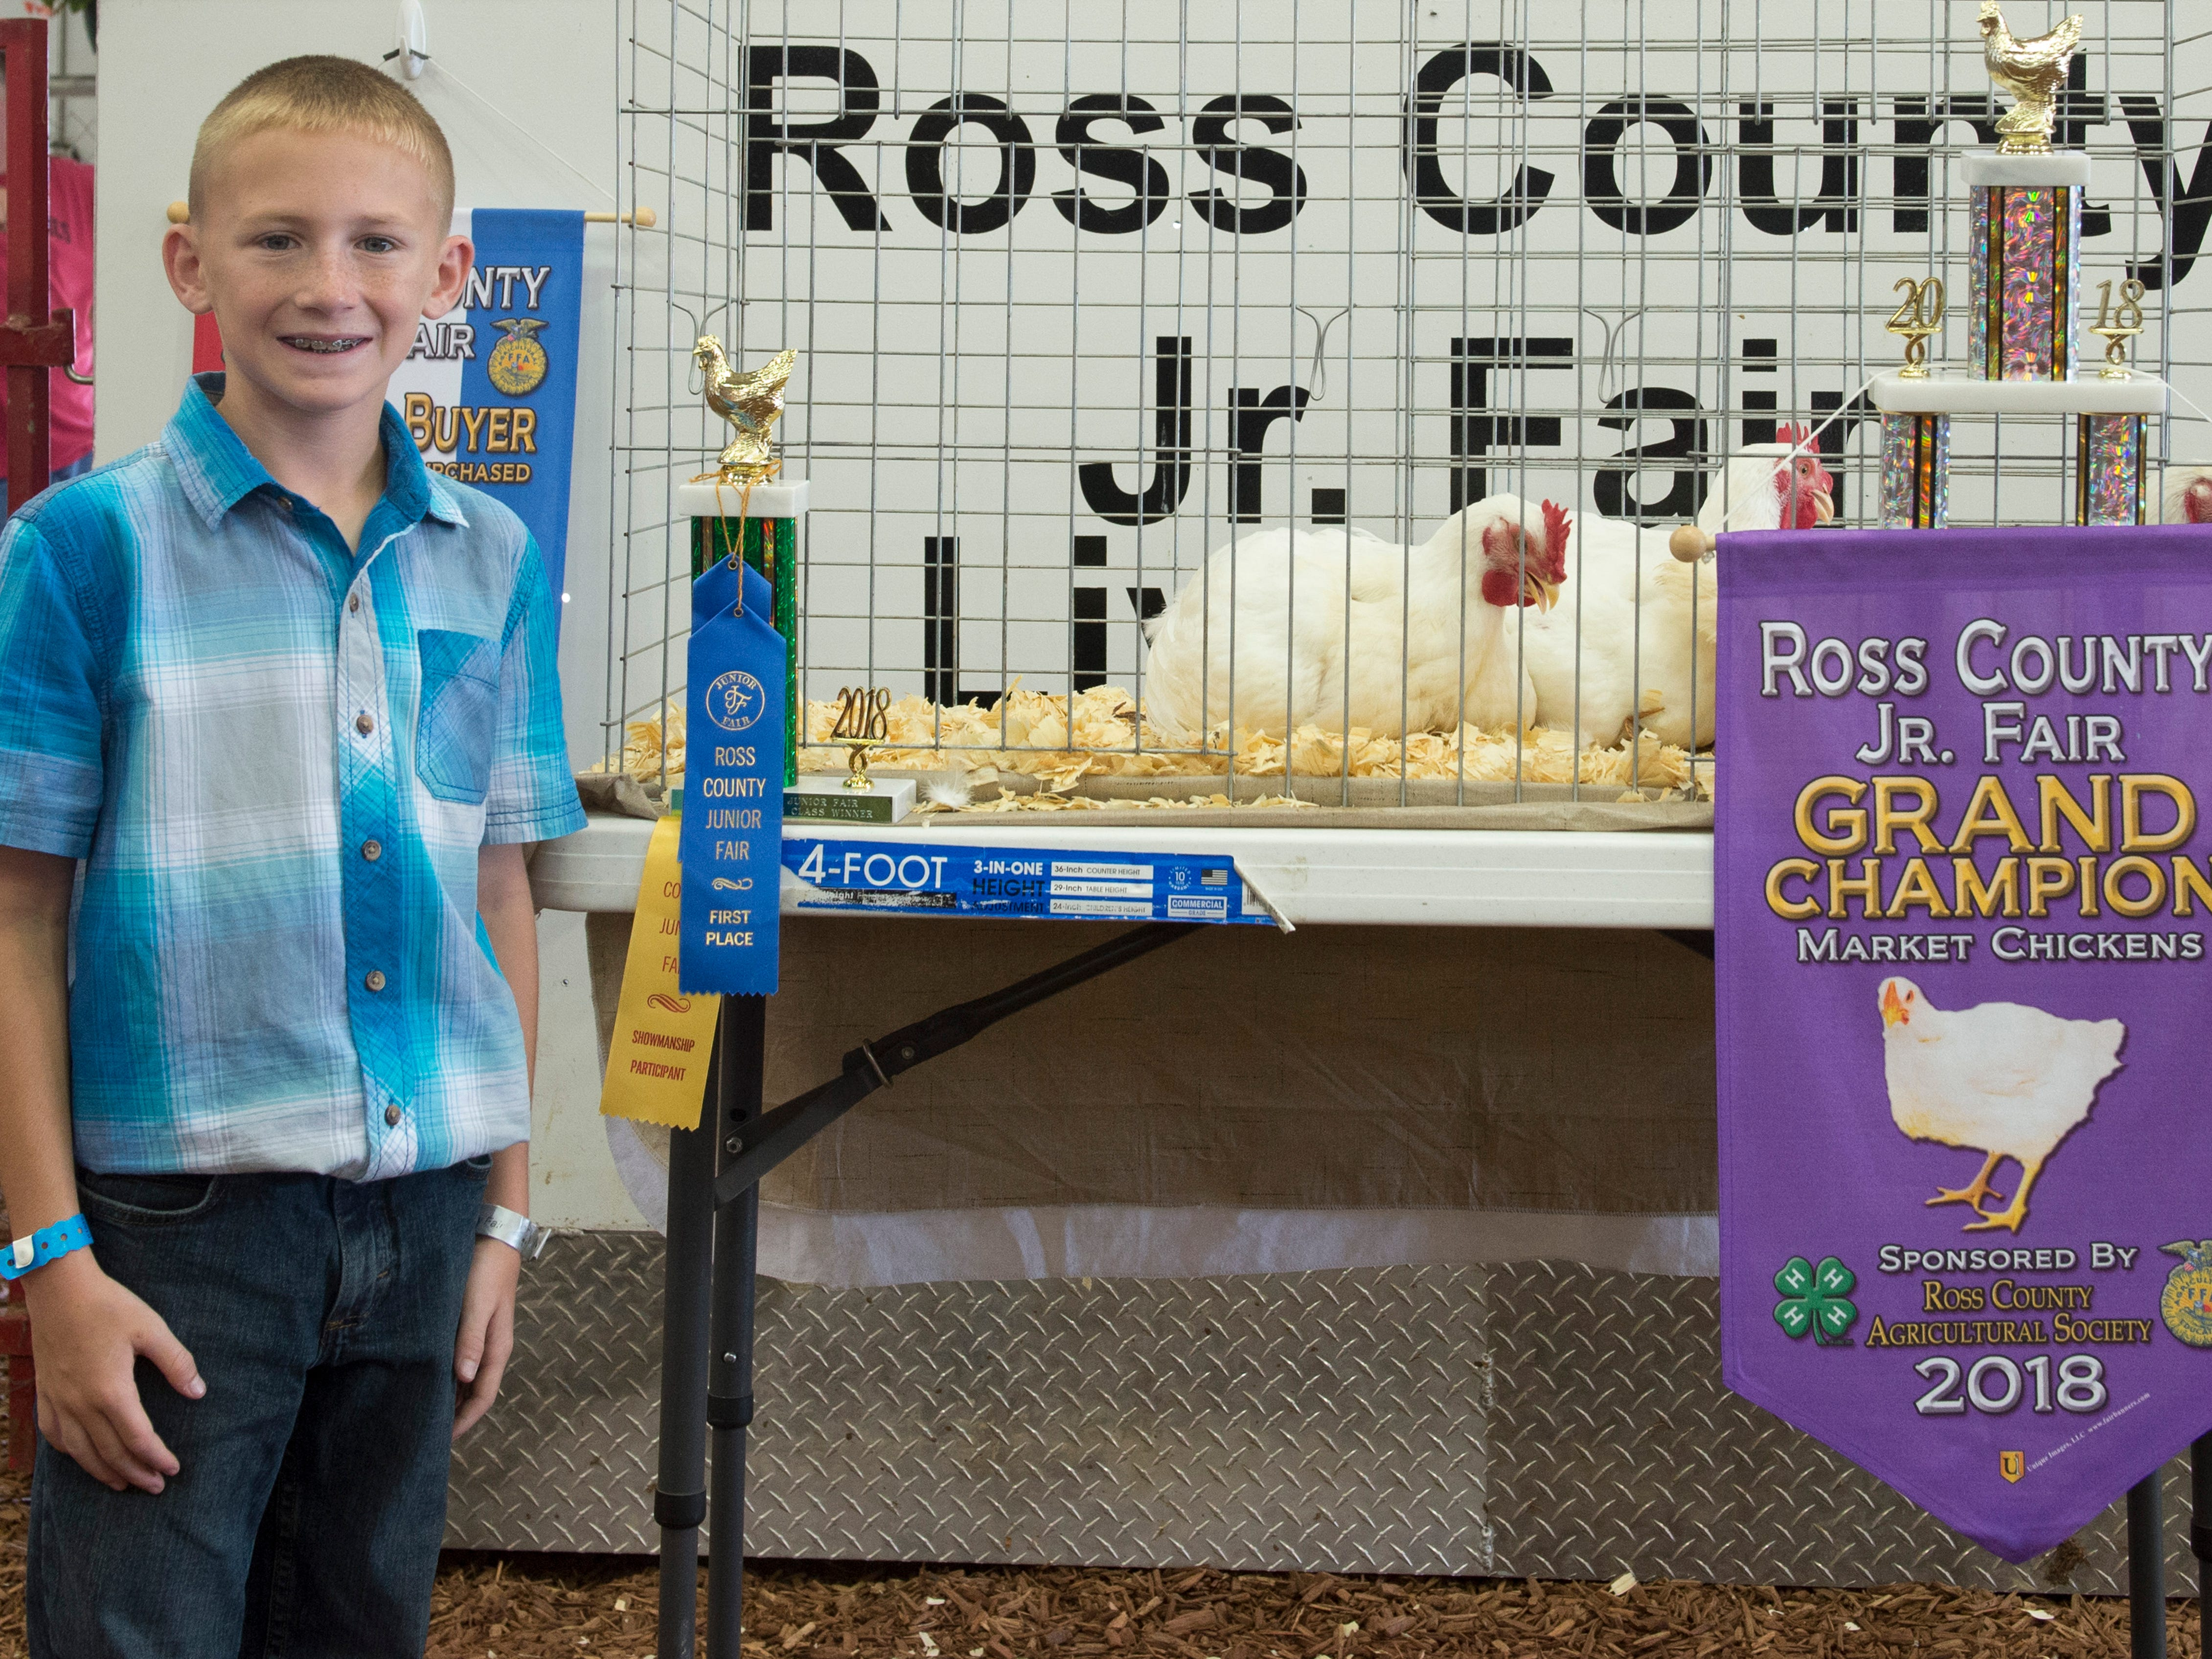 Tanner Beam poses with his Grand Champion Market Chicken during the Jr. Fair Market Steer, Poultry and Rabbit Sale at the Ross County Fair on August 11, 2018, in Chillicothe, Ohio.